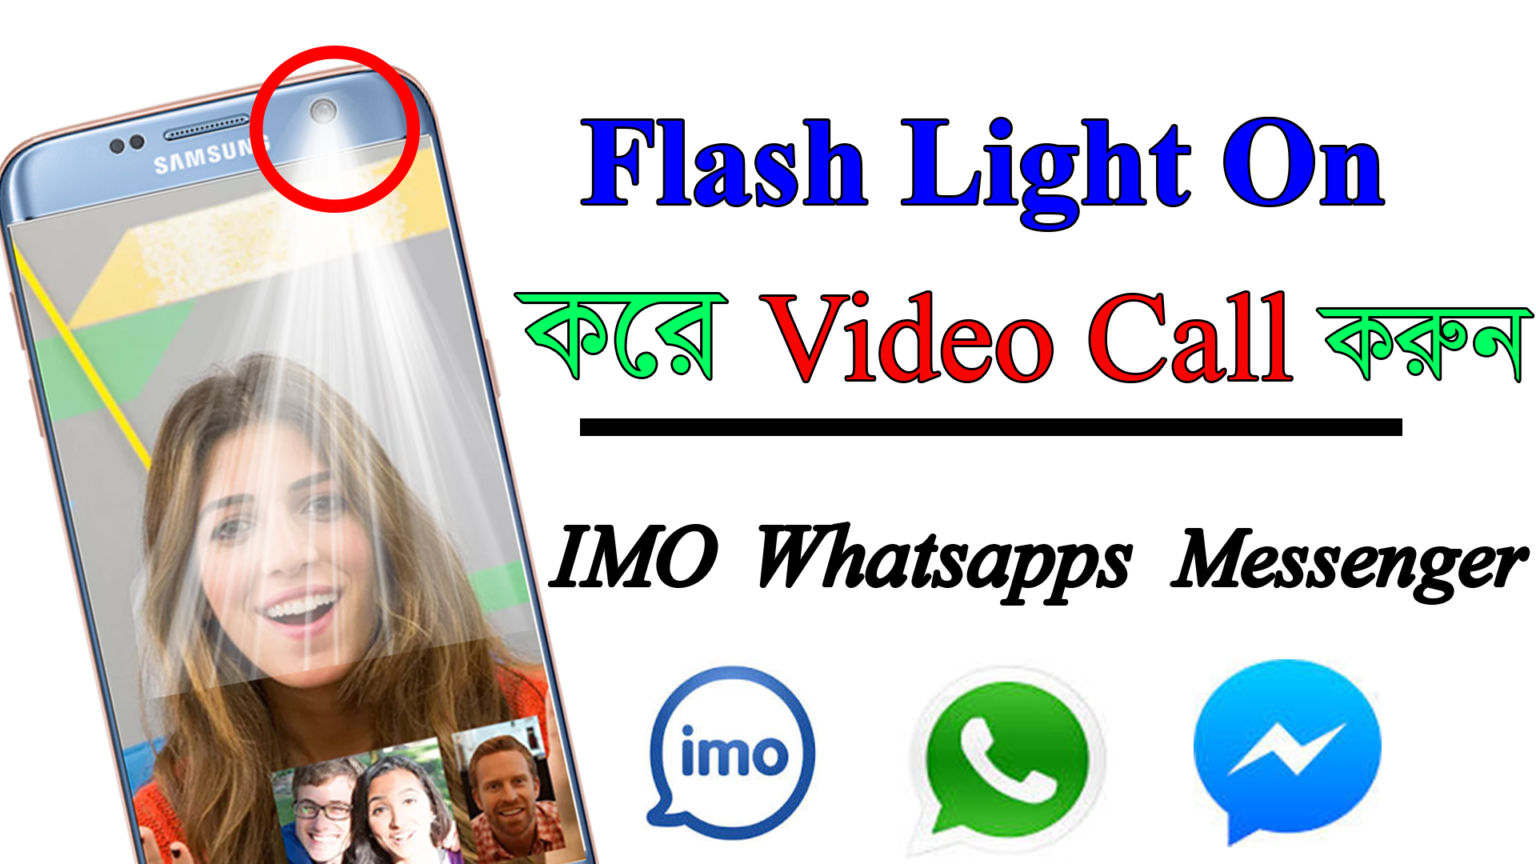 Front Flash On করে  রাতে ও Video Call করুন Imo,Whatsapps,Messenger, তে।Apps টি playstore,Google তে পাবেন না।